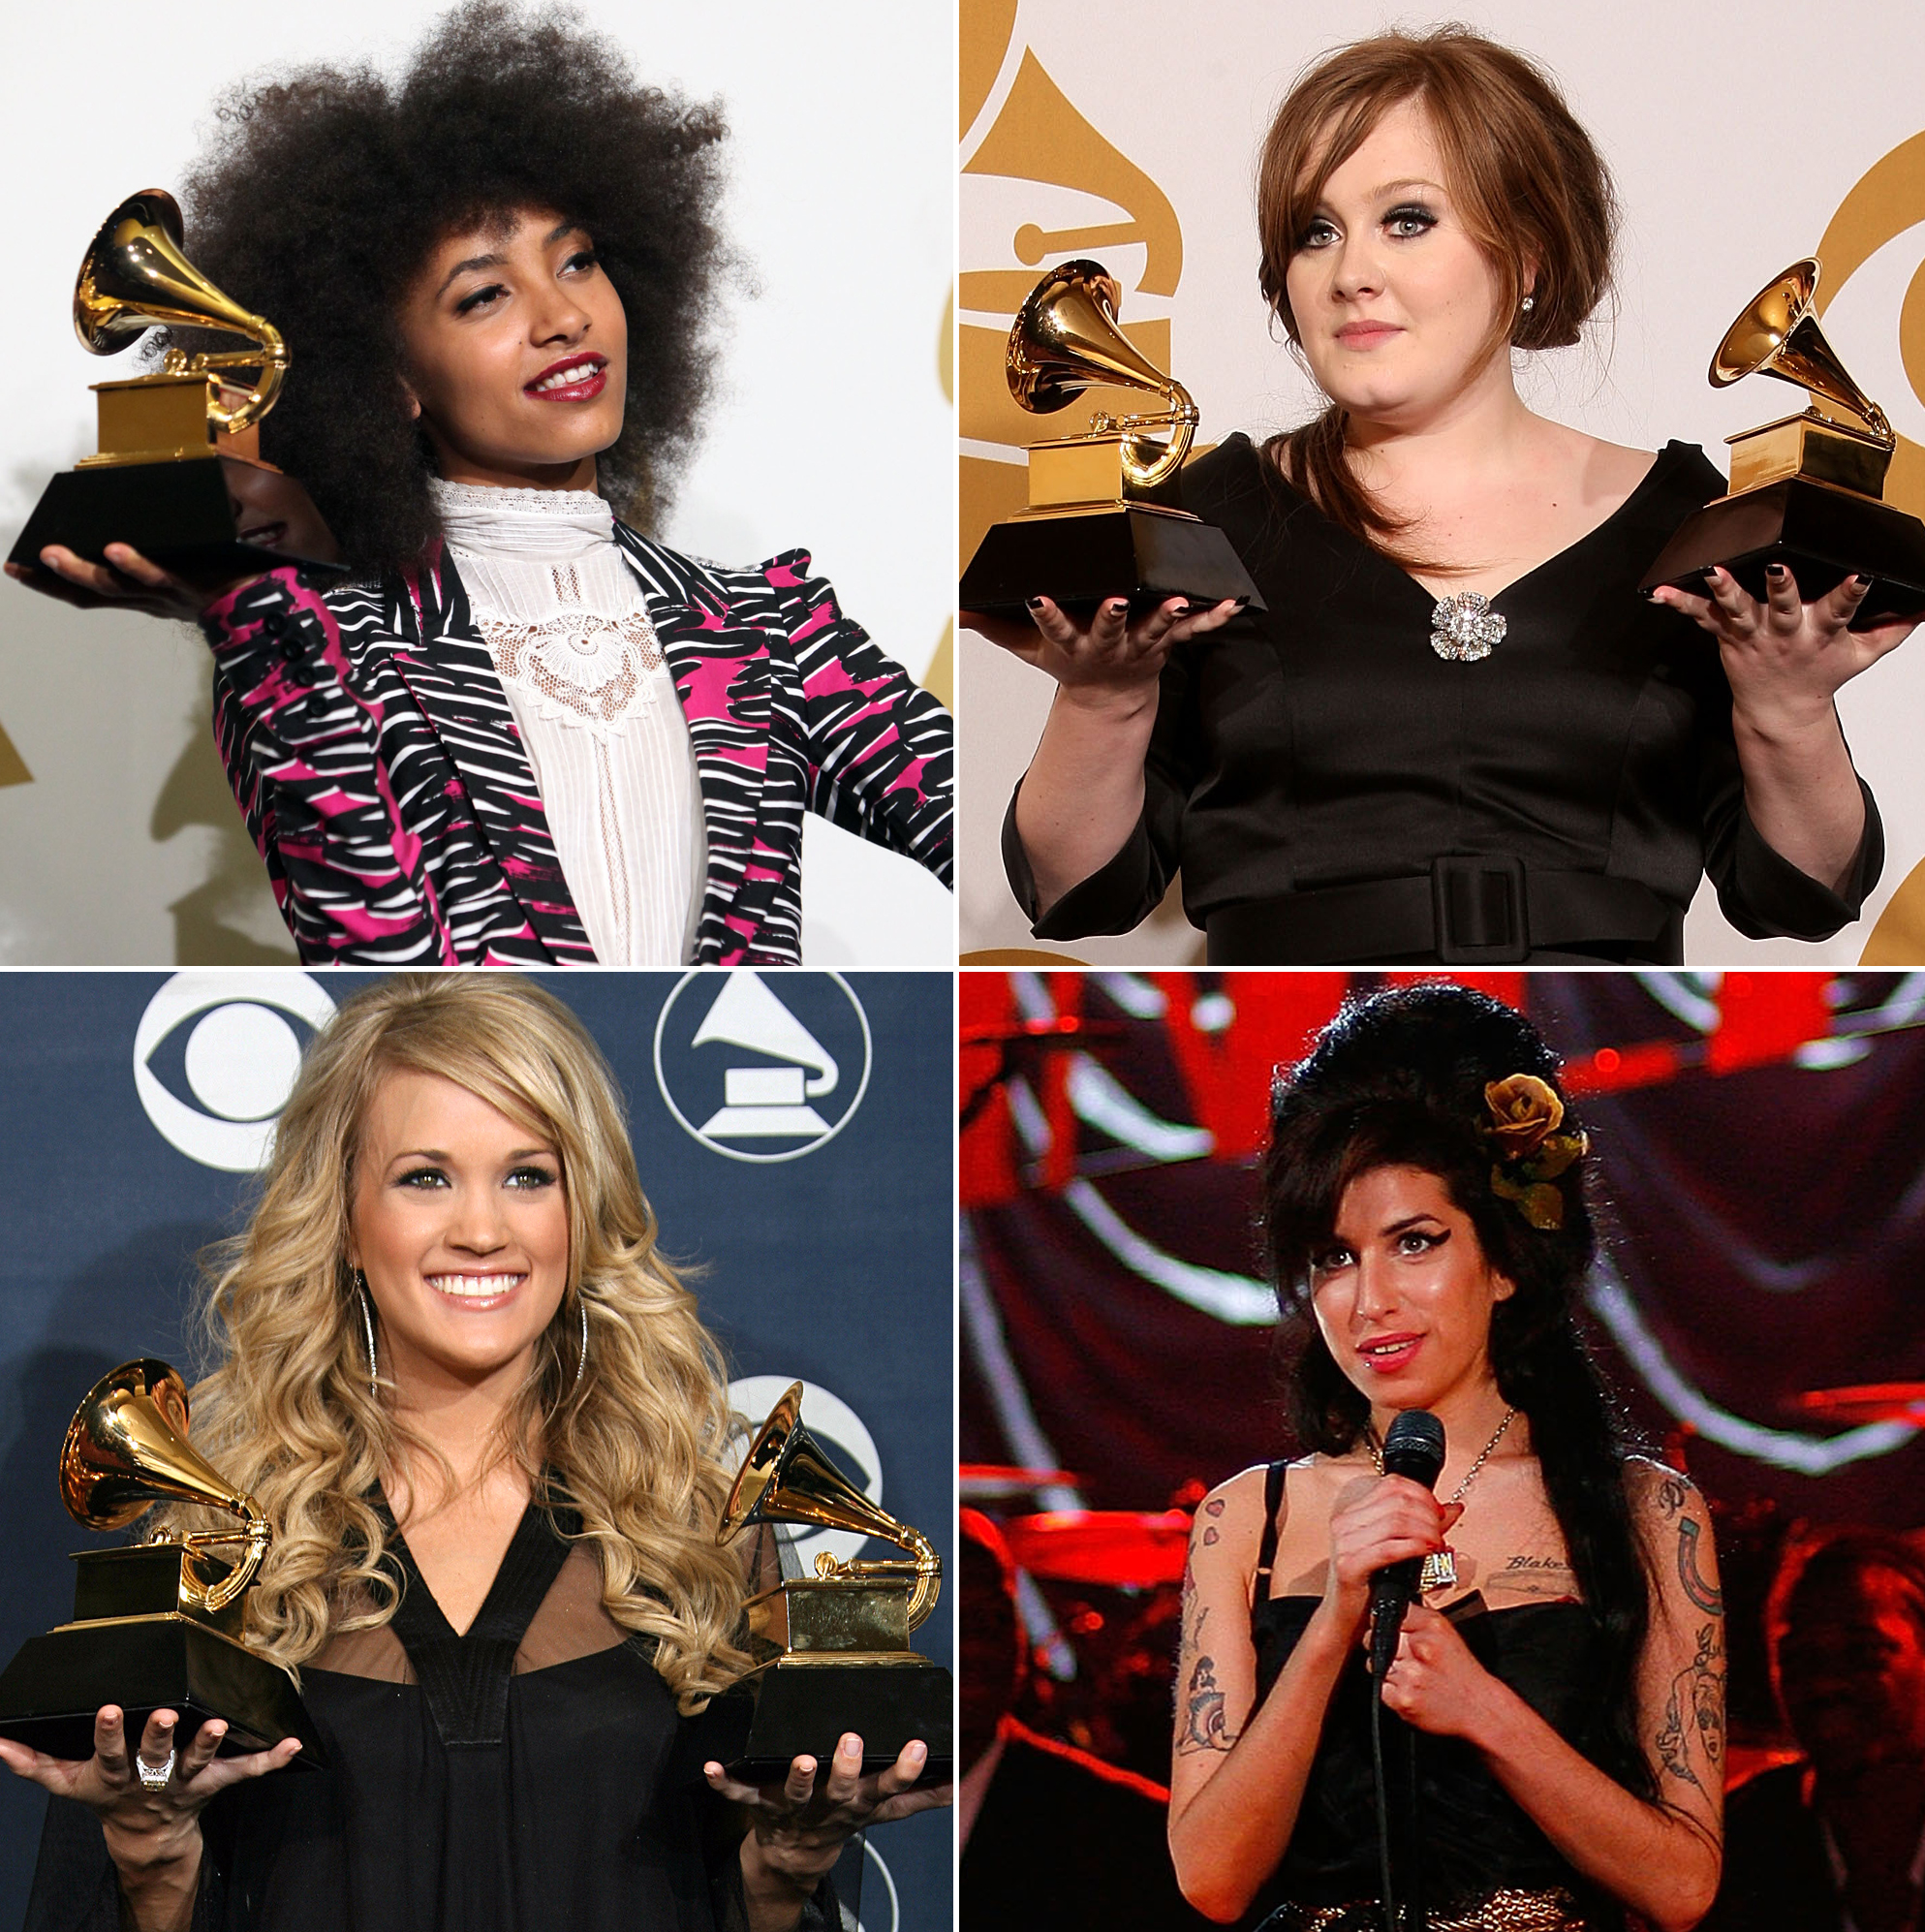 Best New Artist Grammy Winners Where Are They Now - Musician Esperanza Spalding poses in the press room at The 53rd Annual GRAMMY Awards held at Staples Center on February 13, 2011 in Los Angeles, California. Winner of Best New Artist and Best Female Country Vocal Performance Carrie Underwood poses with the trophies at the 49th Grammy Awards in Los Angeles 11 February, 2007.